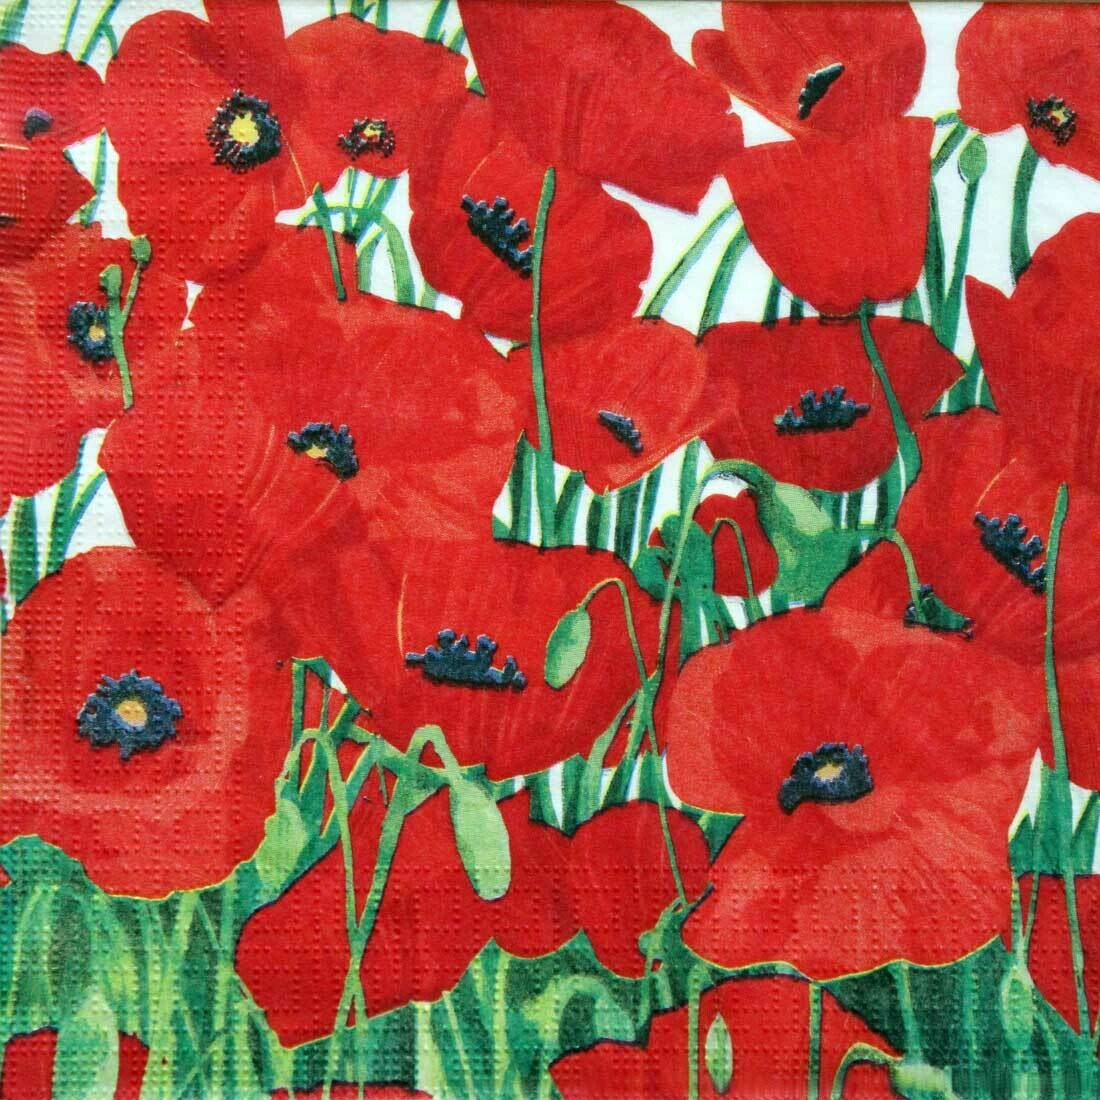 Decoupage Paper Napkins - Floral - Red Poppies 13x13 (1 Sheet)